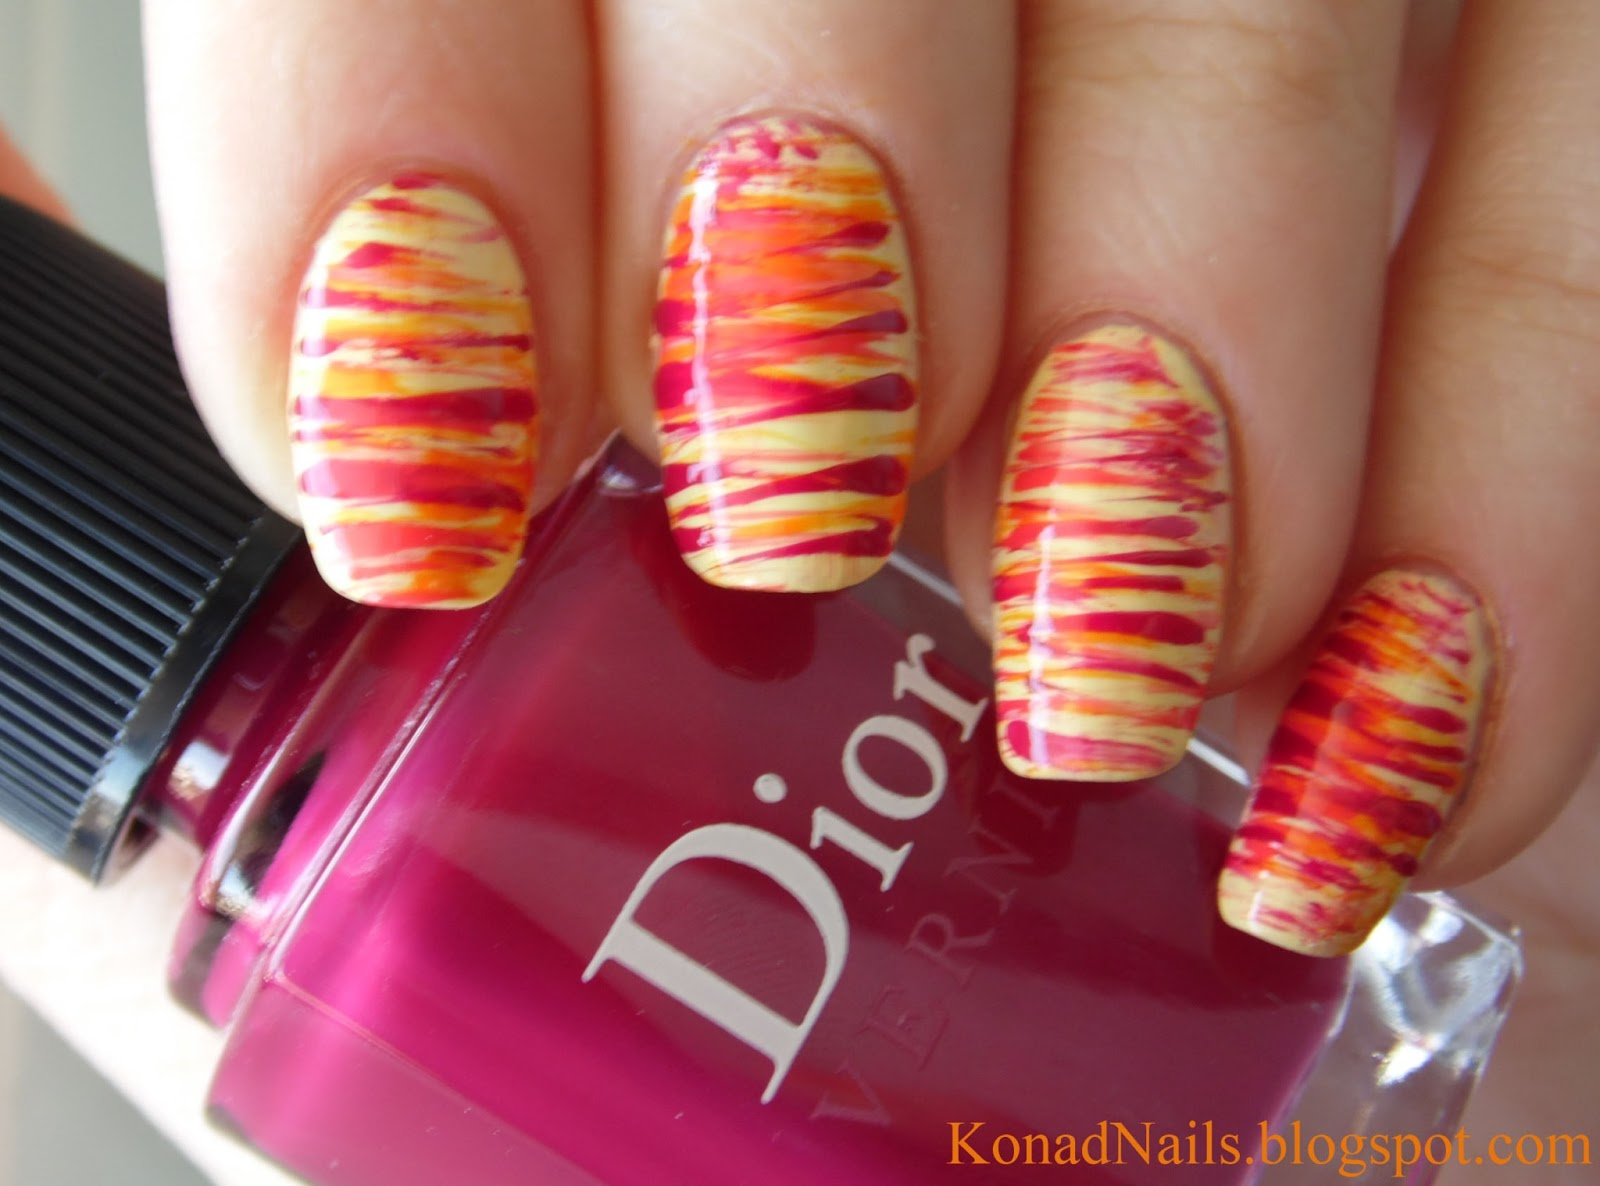 Konad addict striped nail art using fan brush i got this set from an online nail art store born pretty and they cost 596 theyre quality brushes of different dimensions and shapes in order that you prinsesfo Image collections